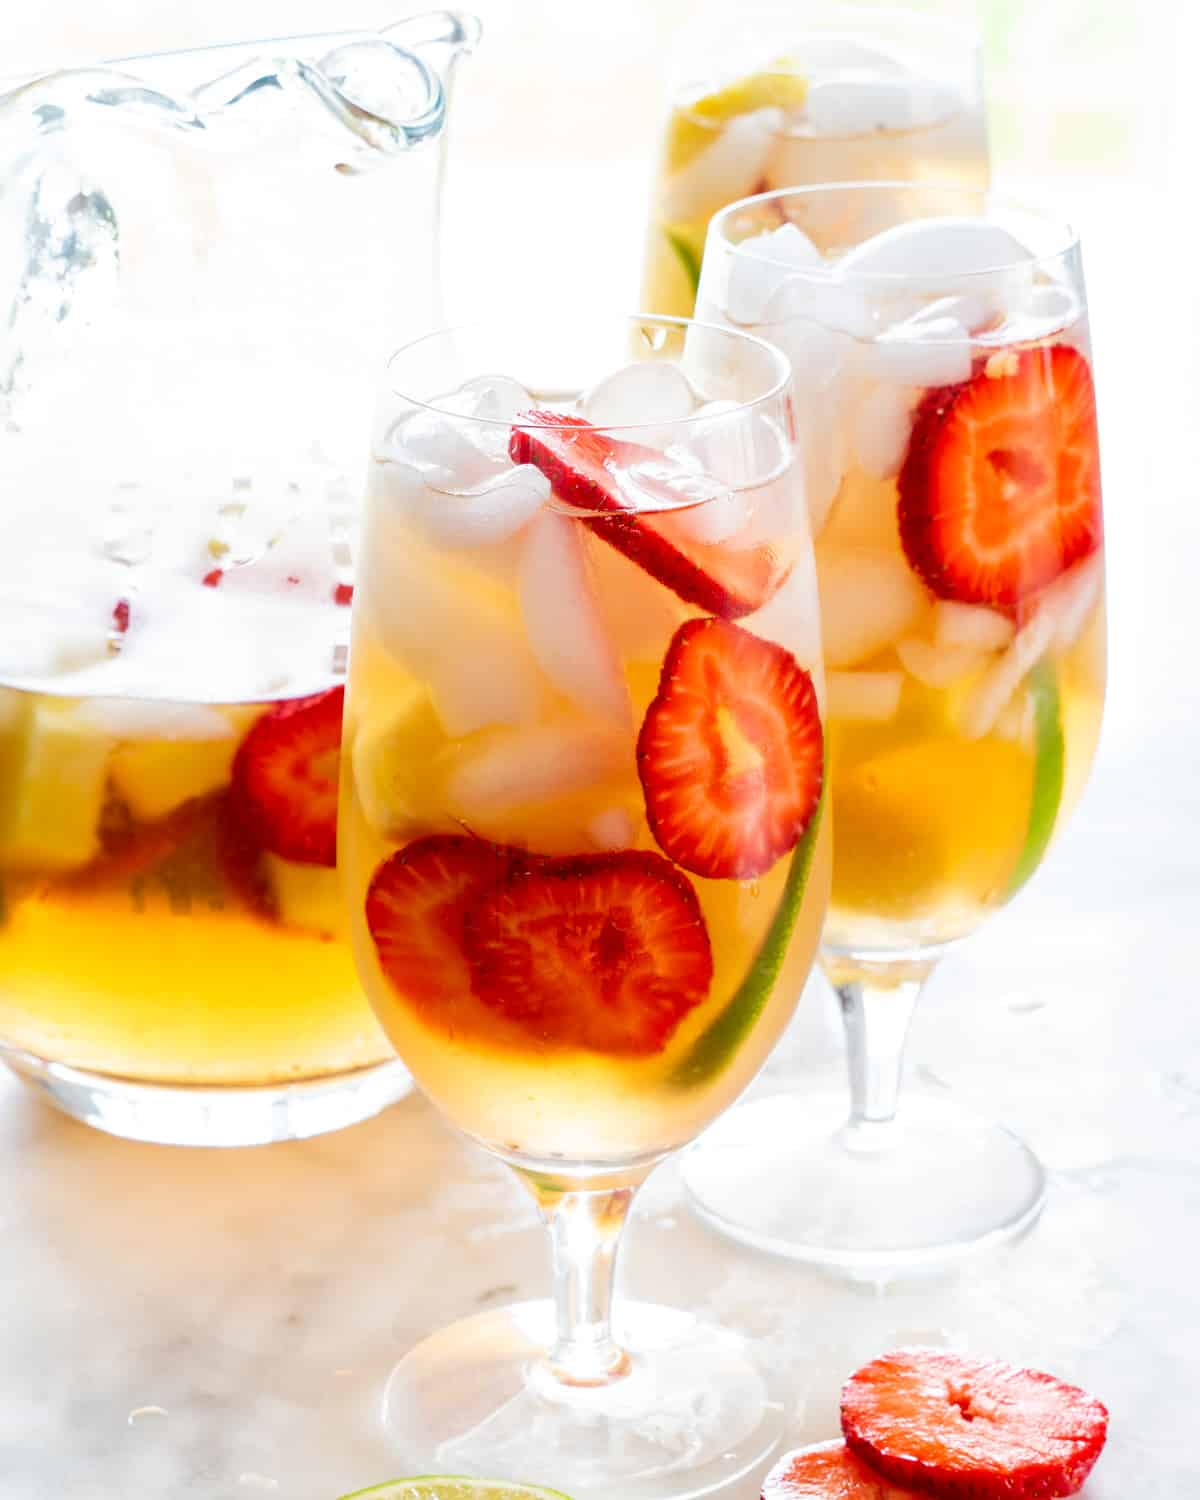 3 glasses of white sangria complete with fruits next to a pitcher of sangria